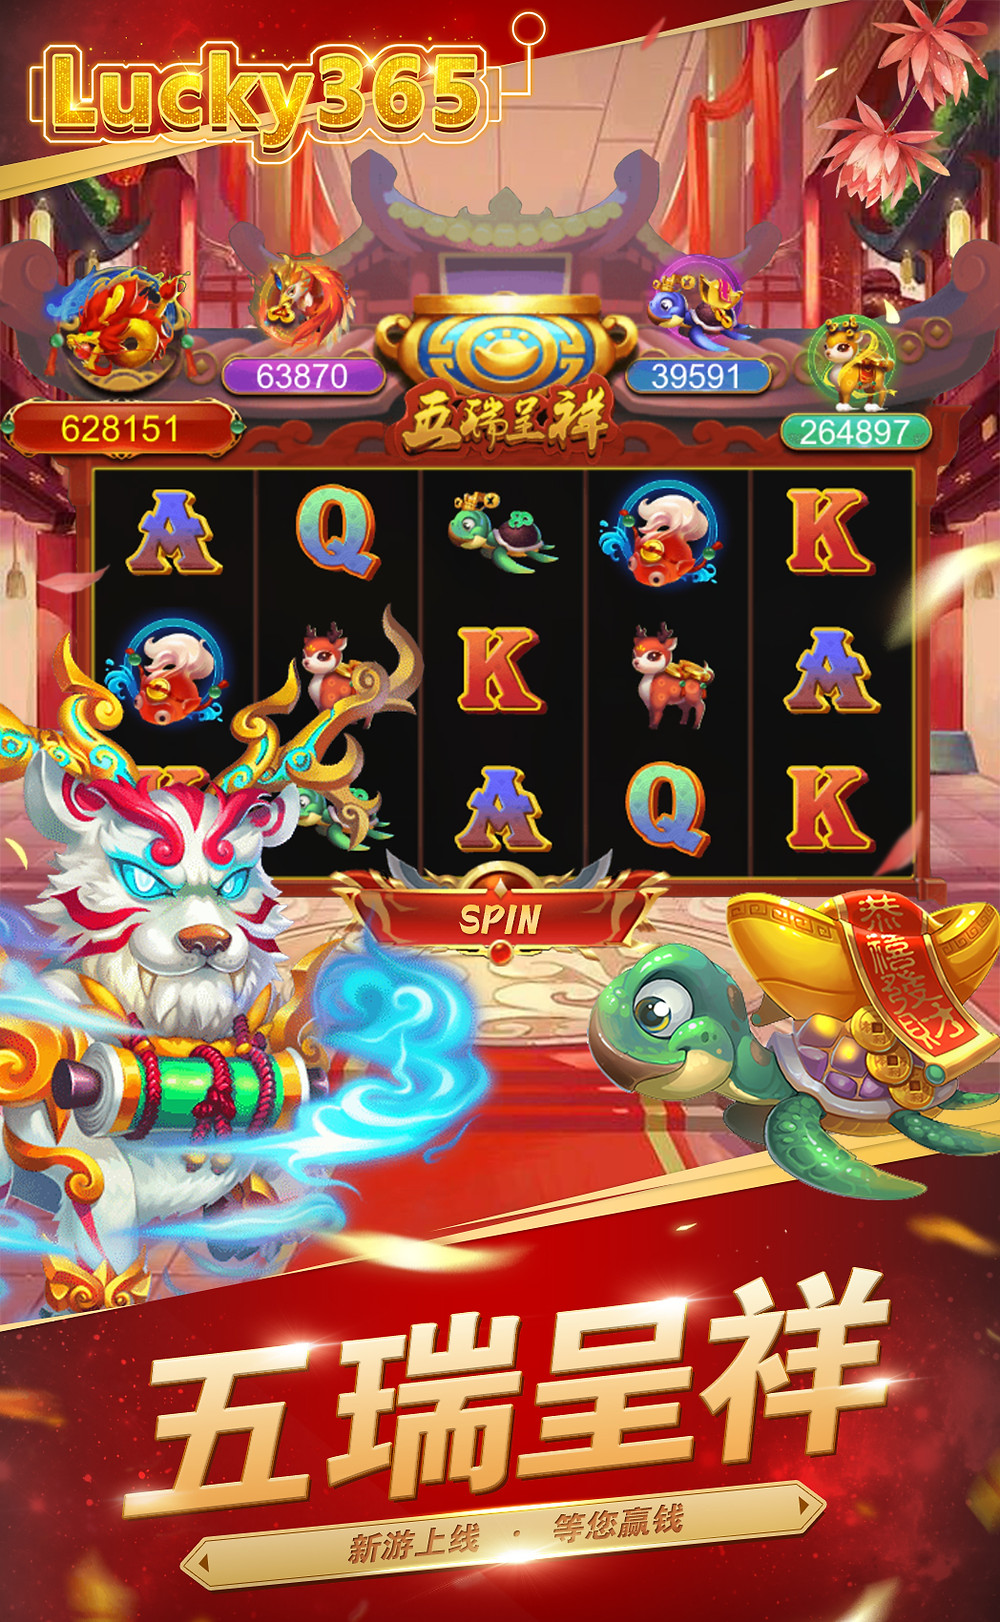 Lucky365 slots games launched a NEW game Rising Fortunes.